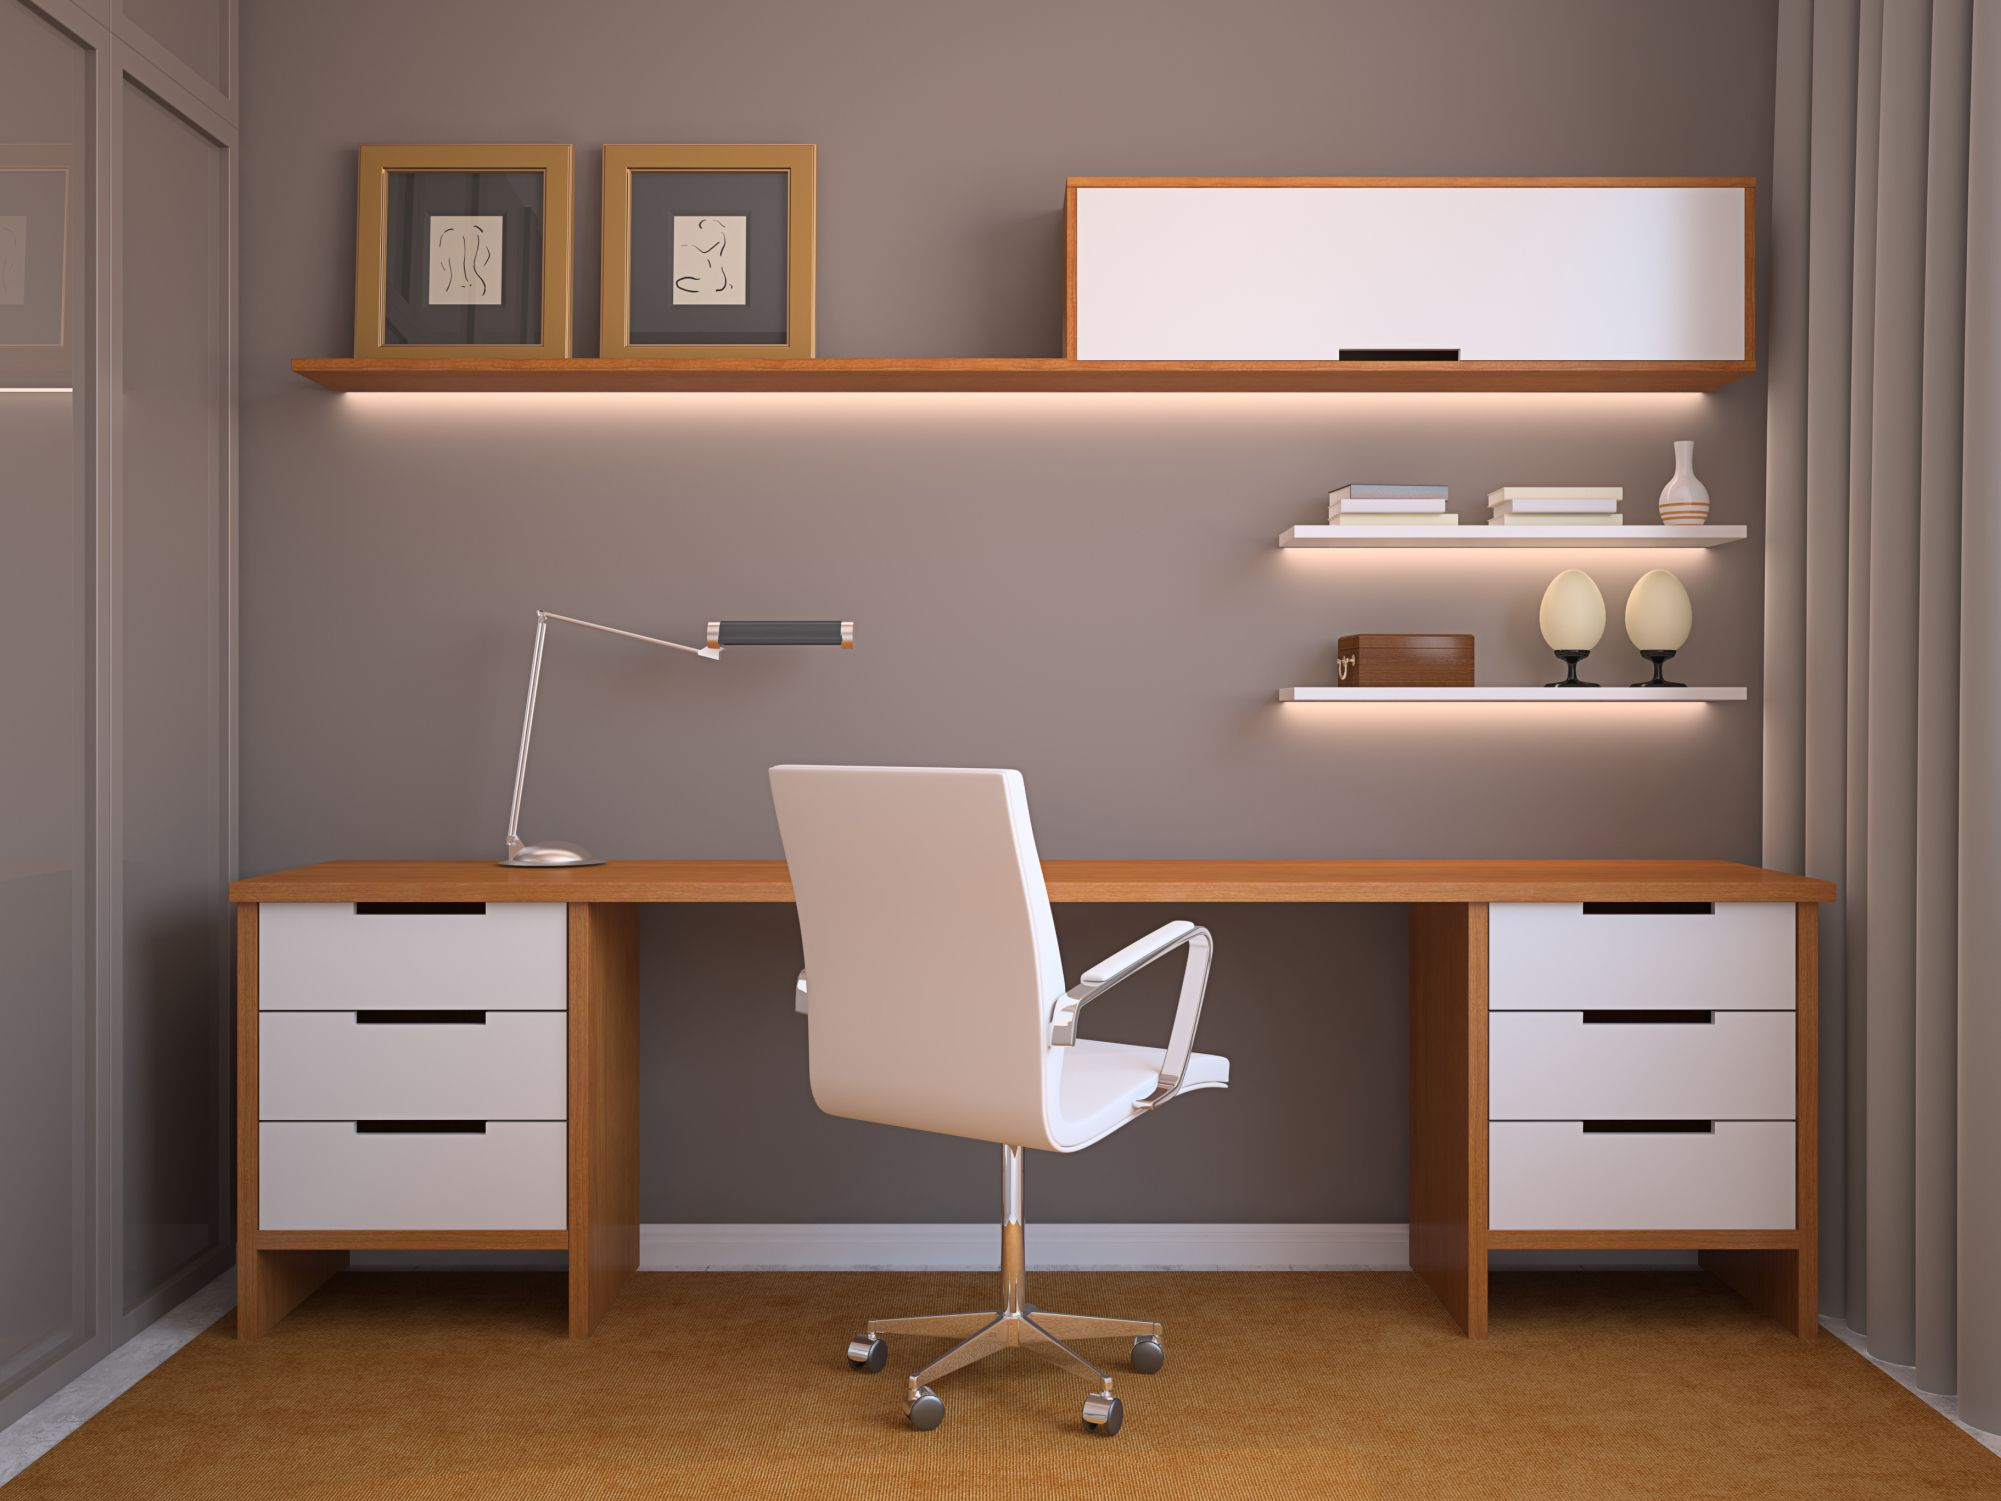 Genial Office, Adorable Modern Home Office Design White Minimalist Plywood  Furniture Idea Swivel Chair Wall Mount